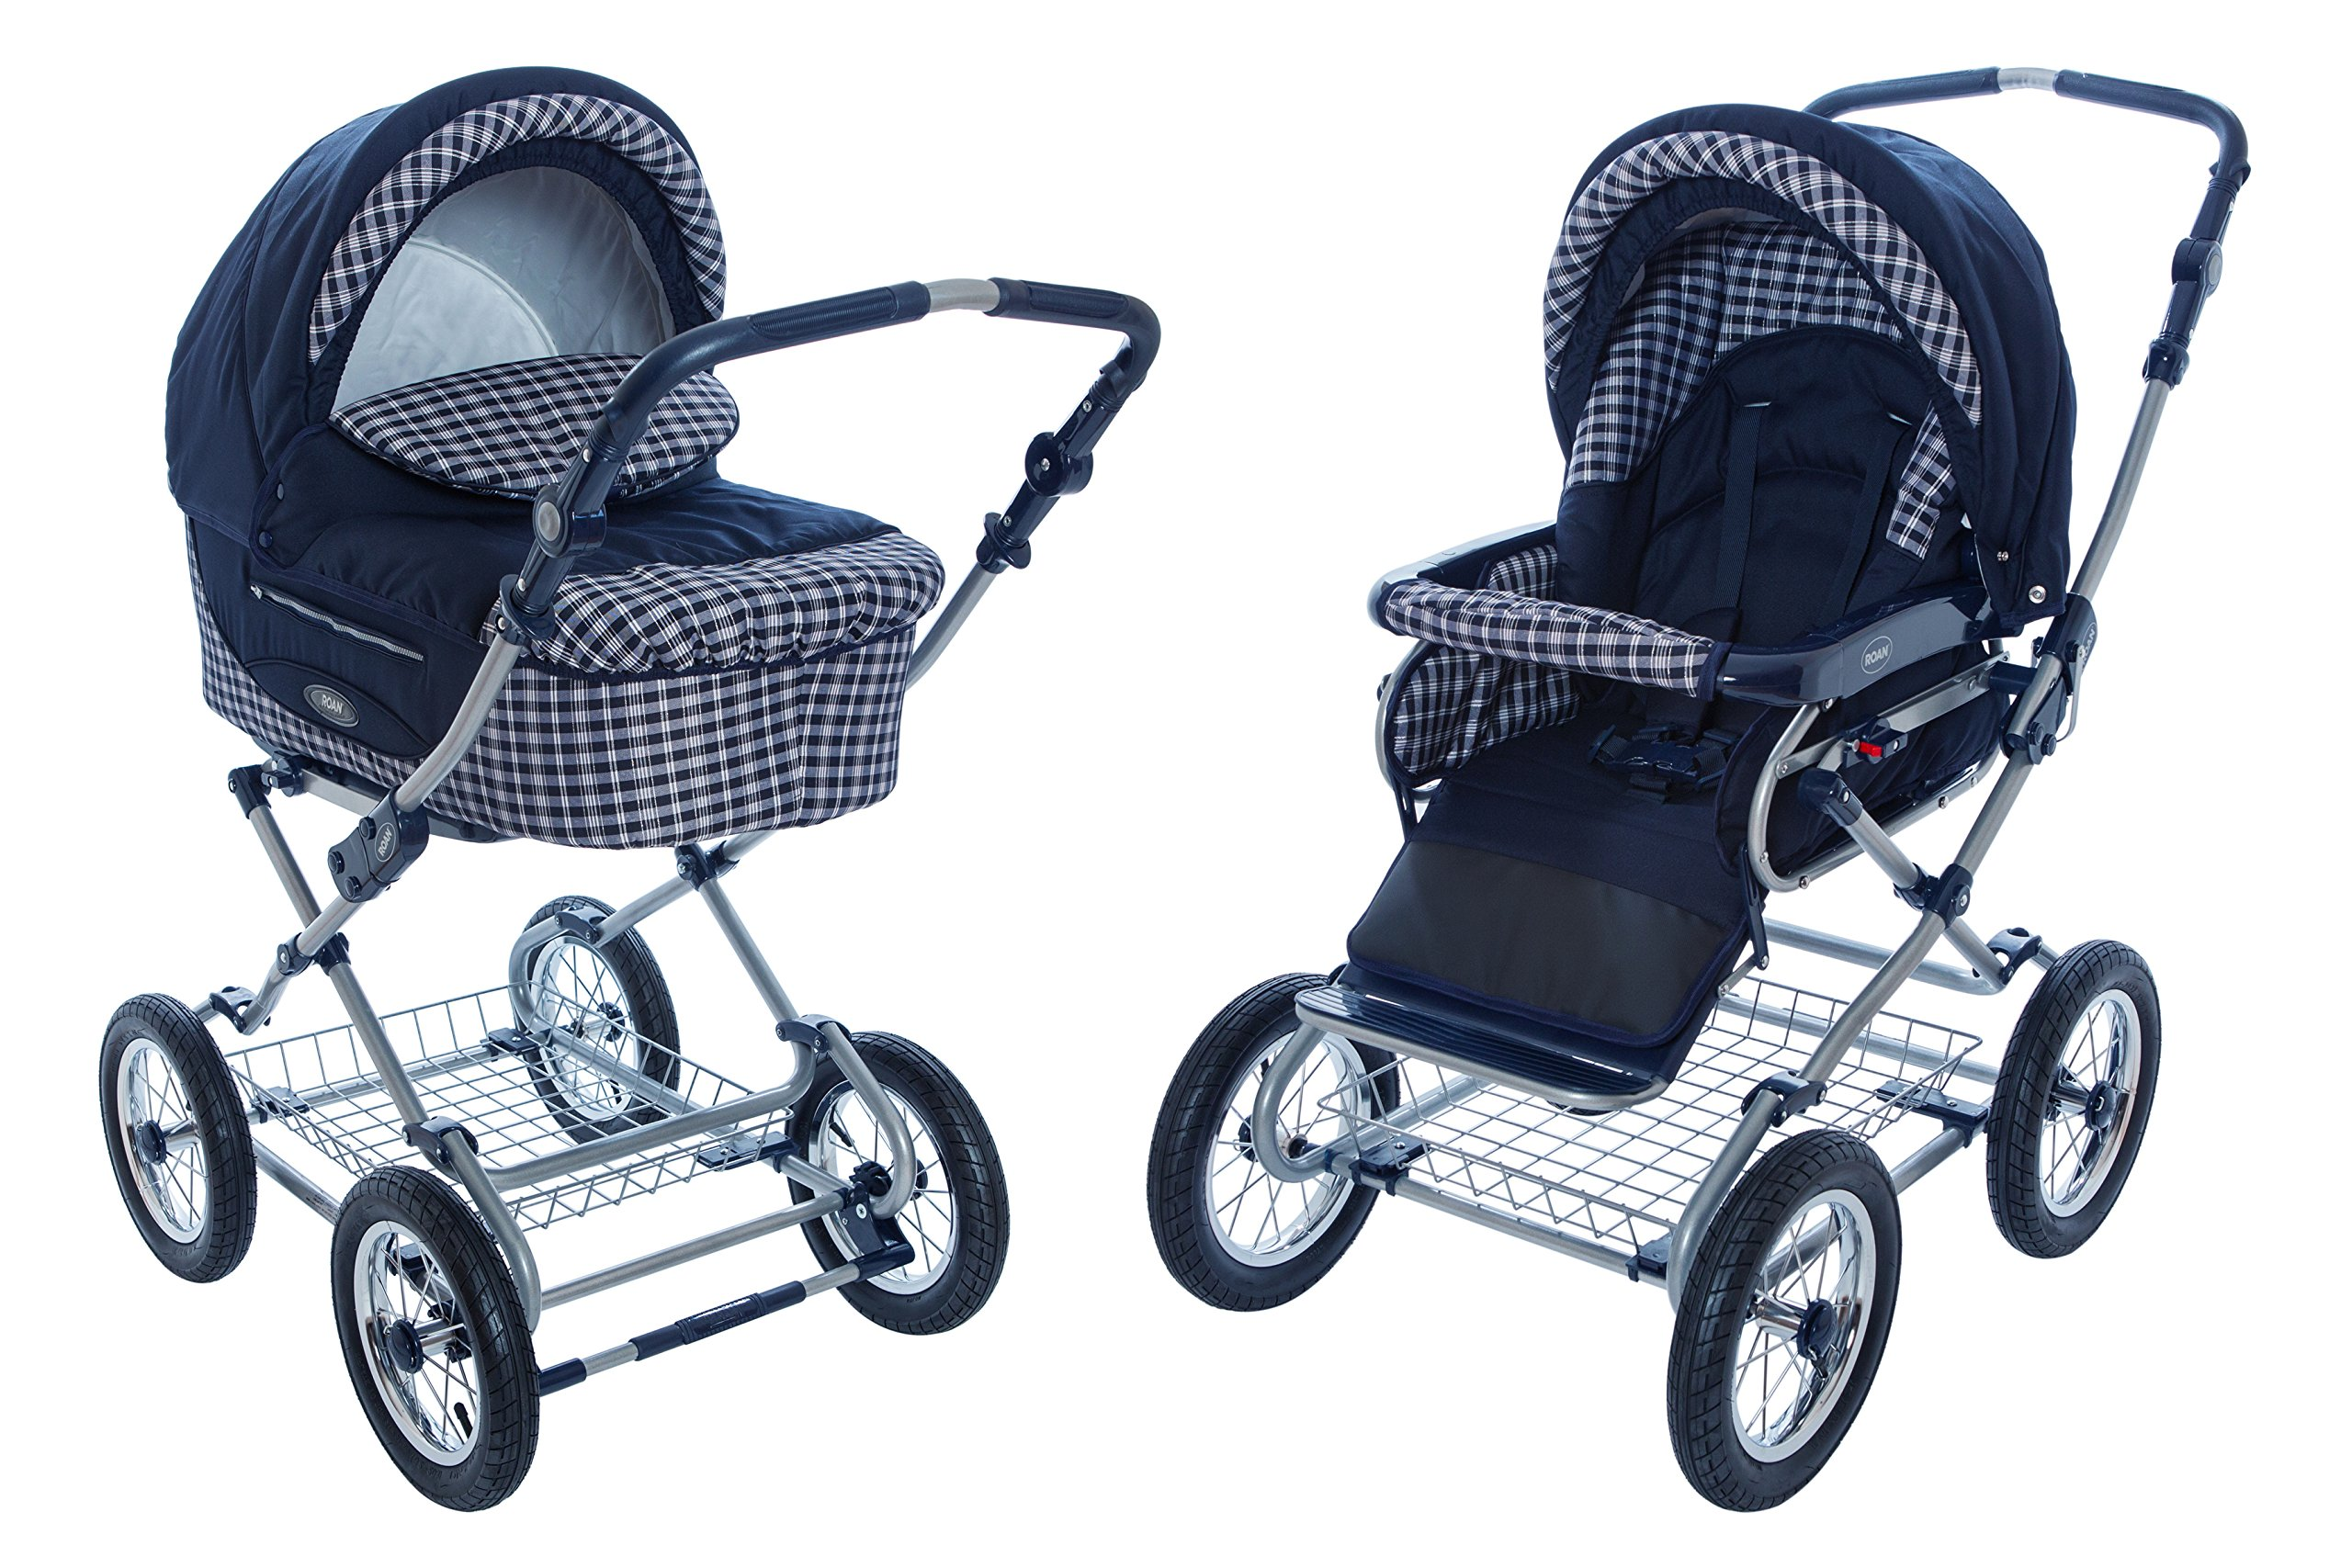 Roan Kortina Classic 2 in 1 Pram Stroller with Bassinet for Newborn Baby and